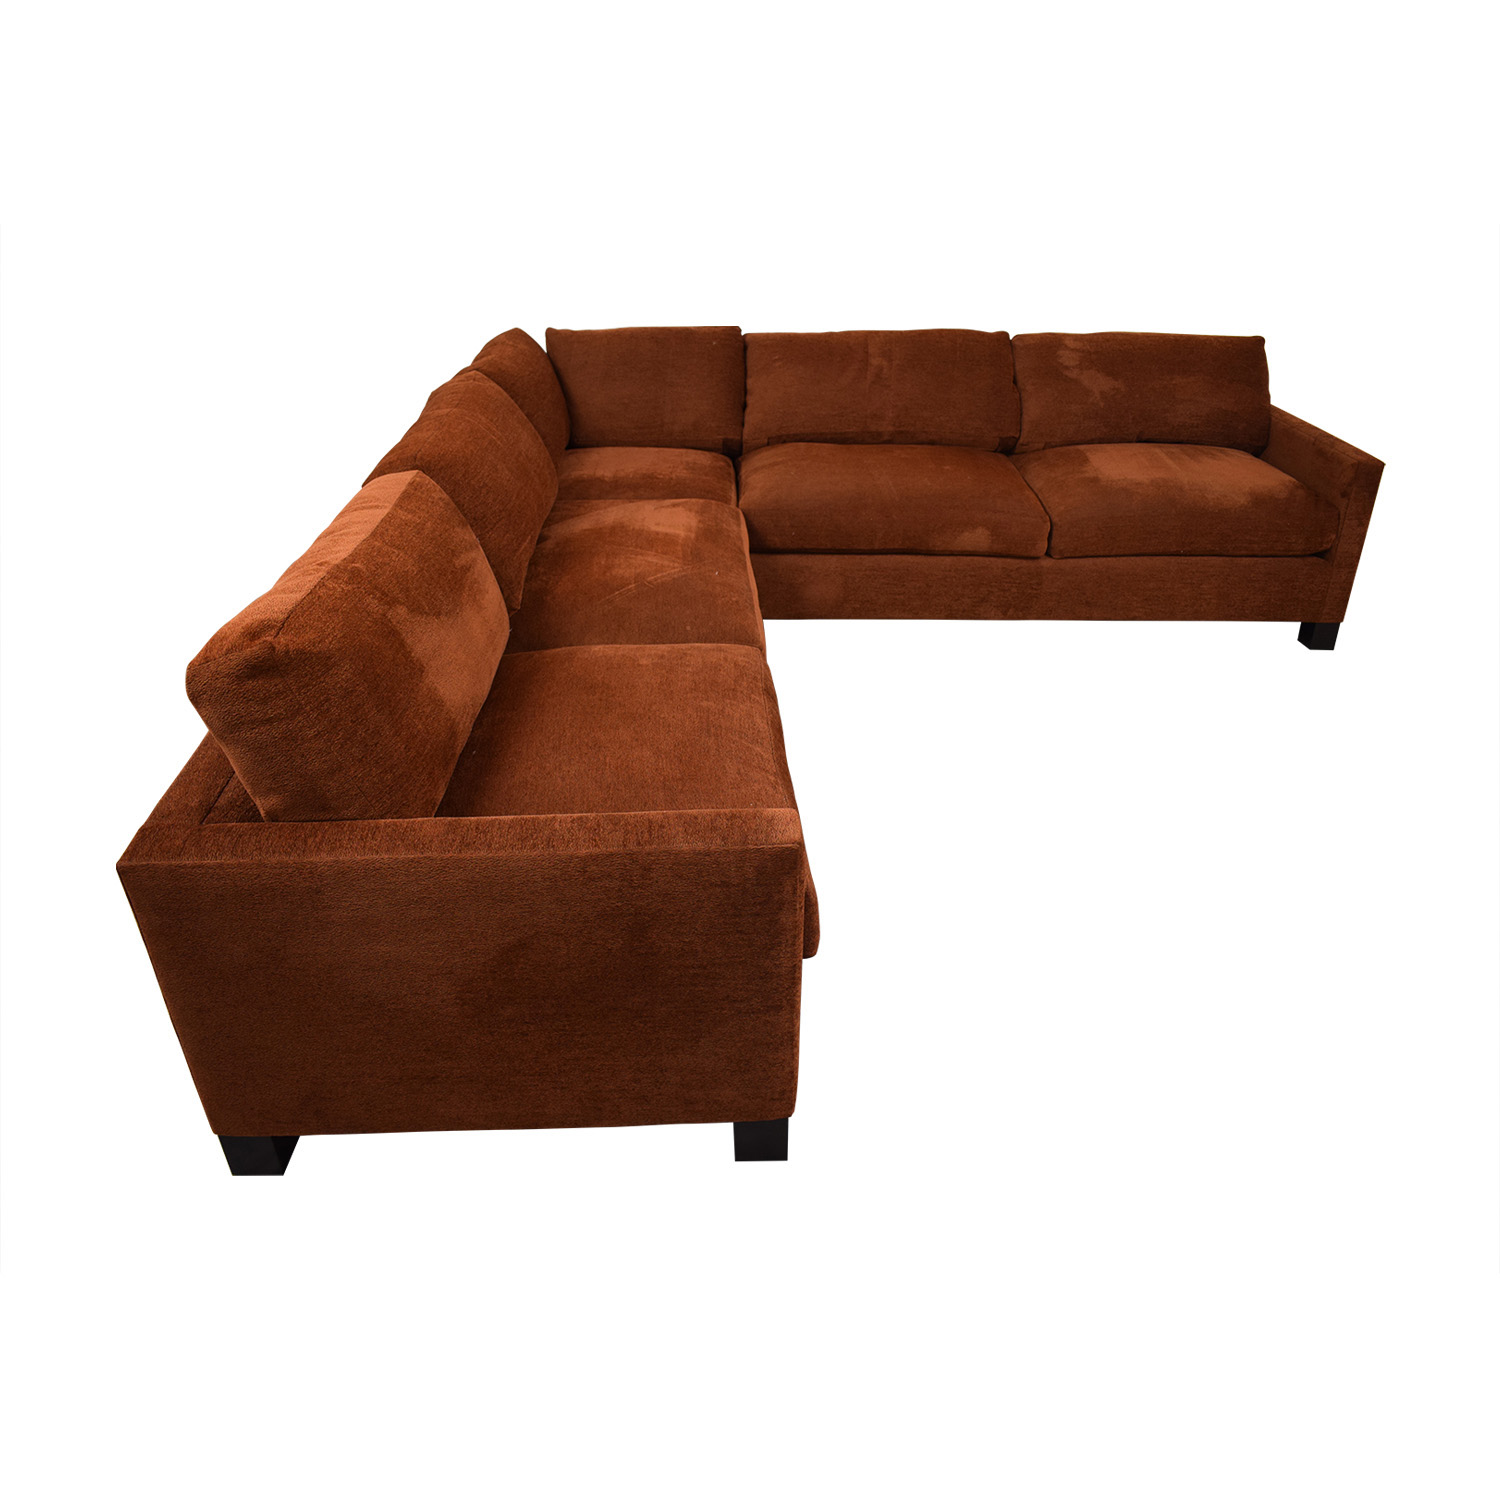 A. Rudin A. Rudin Burnt Orange L-Shaped Sectional second hand